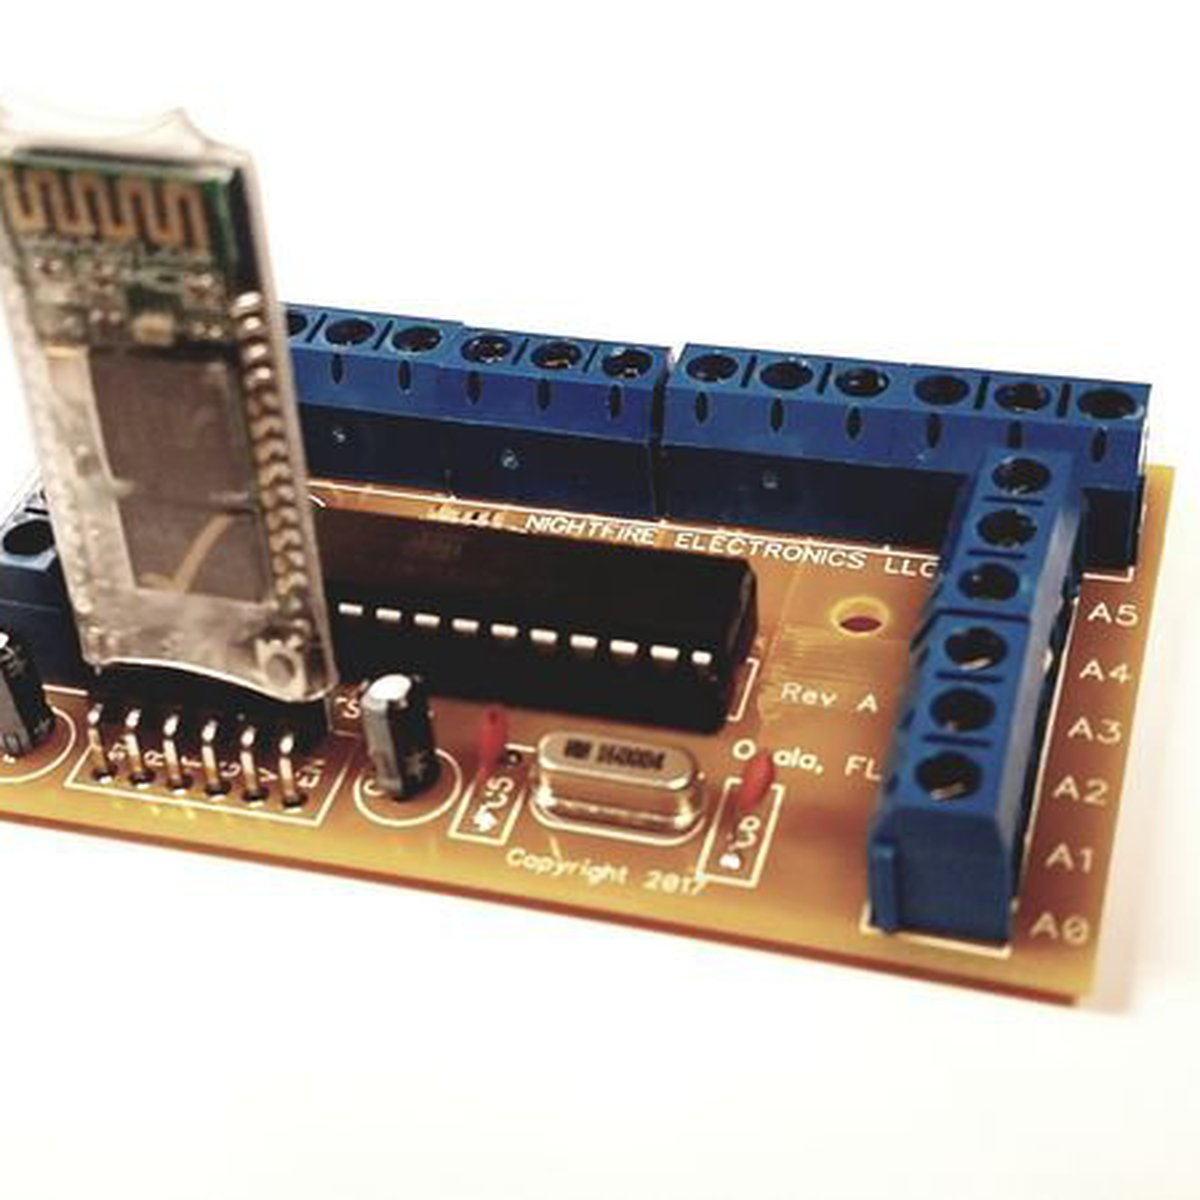 Arduino Bluetooth Breakout Board From Nightfire Electronics Llc On Opamp Monostable And The Circuit Tindie